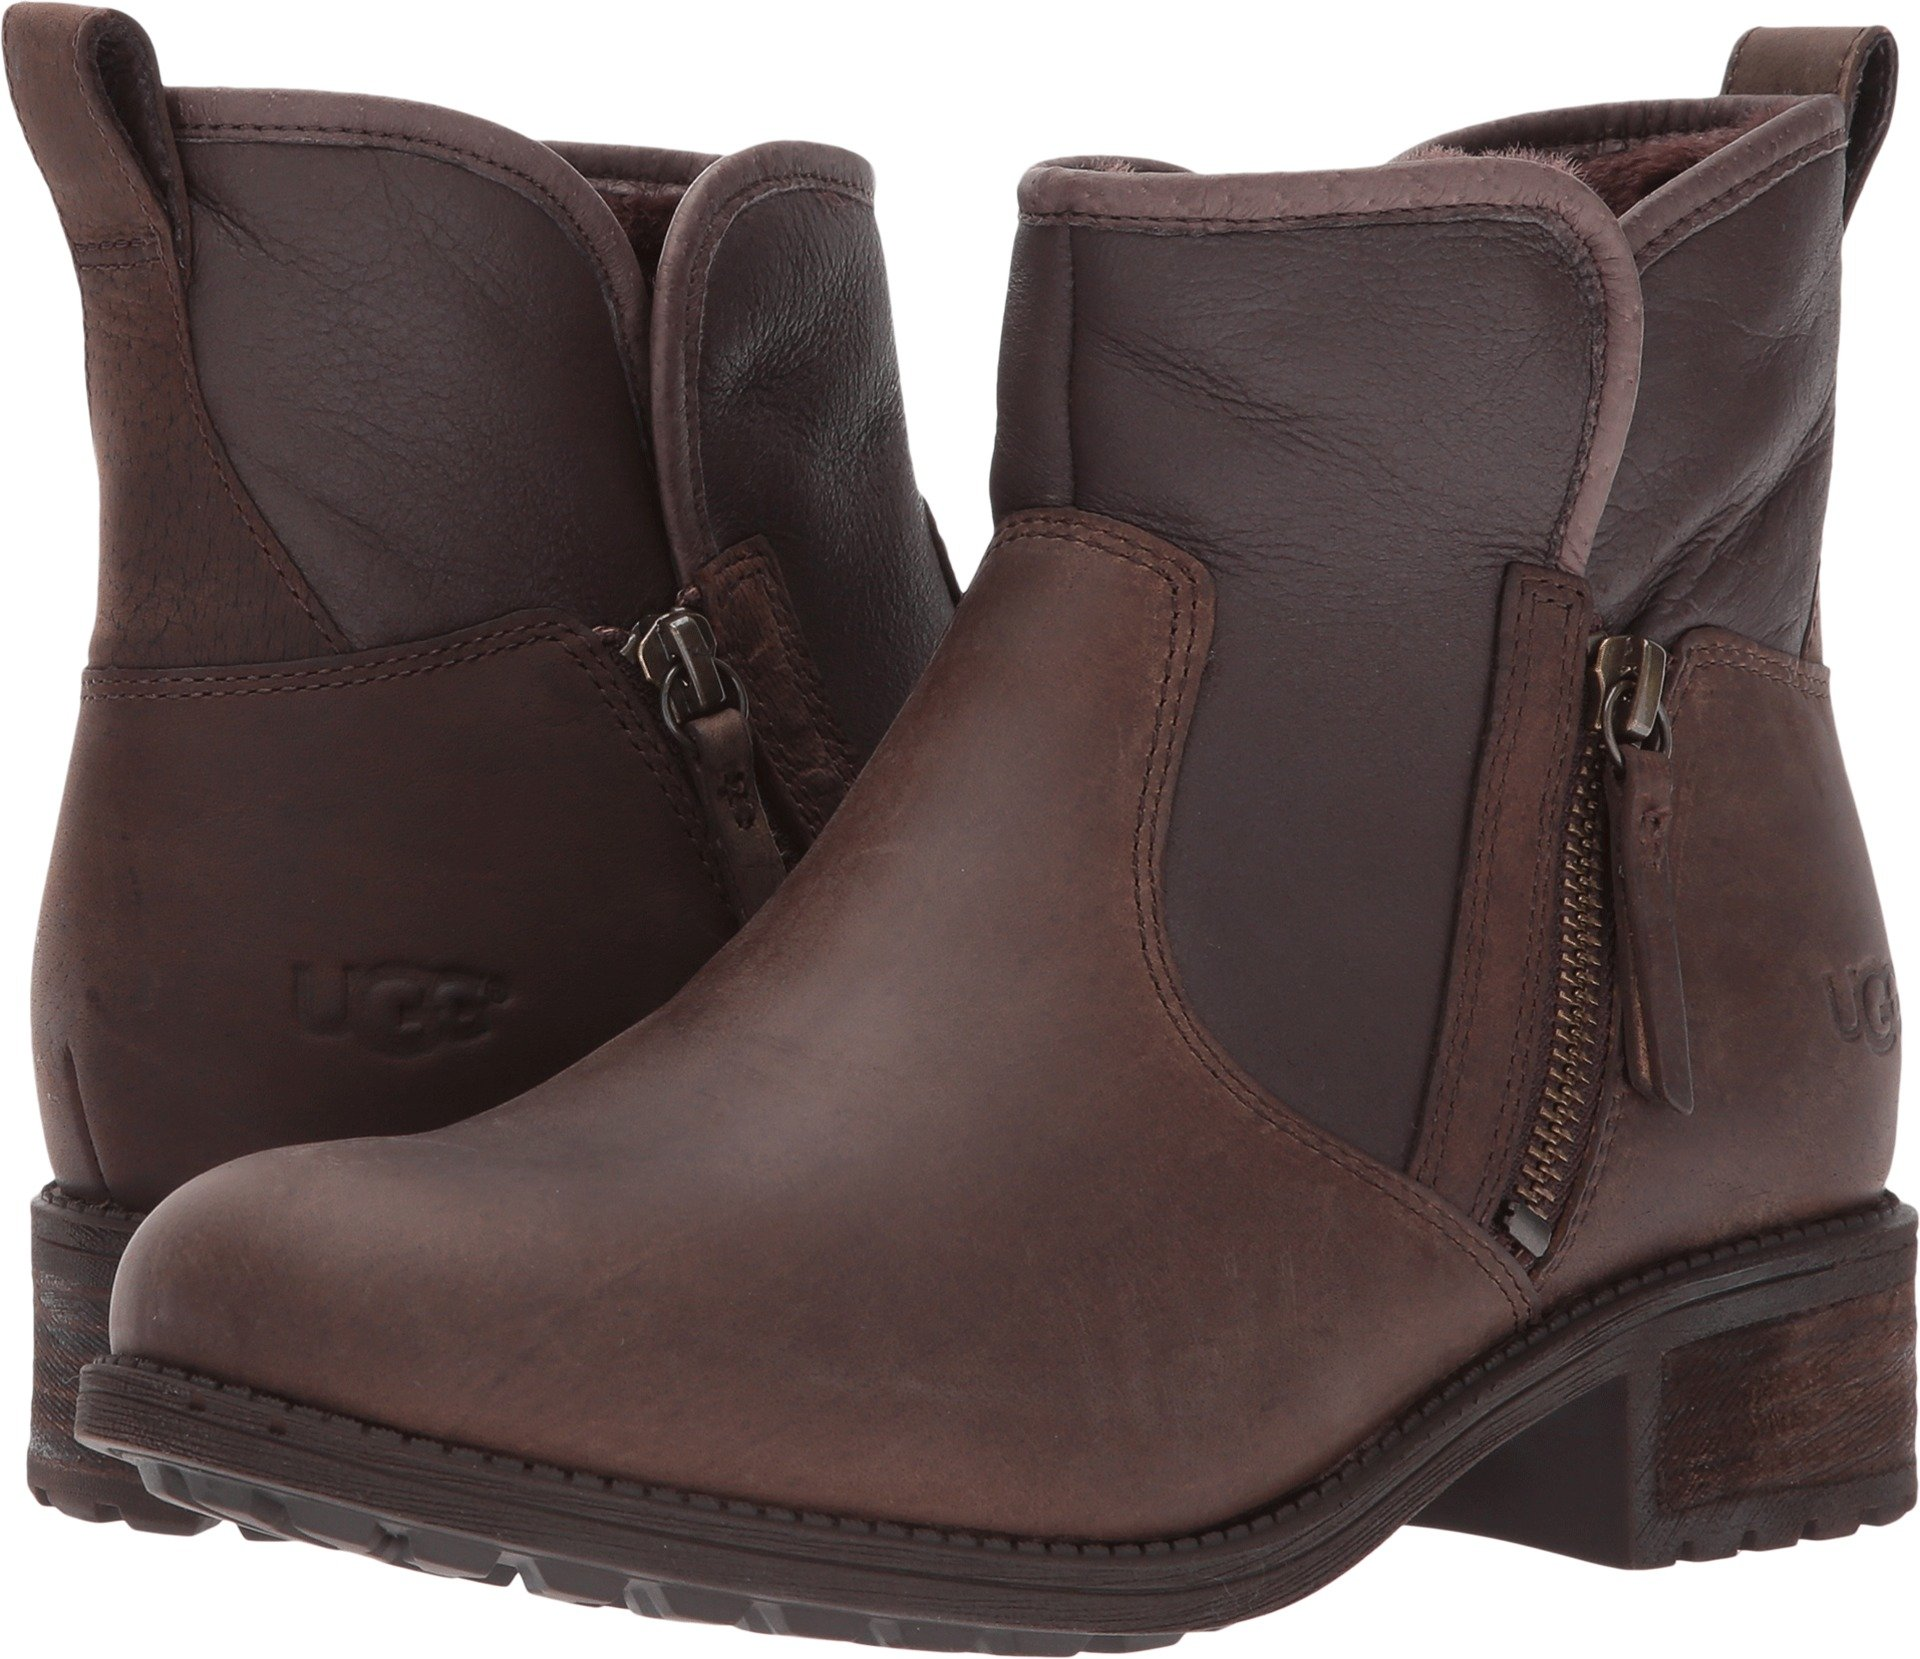 UGG Women's Lavelle Boot Stout Size 6.5 B(M) US